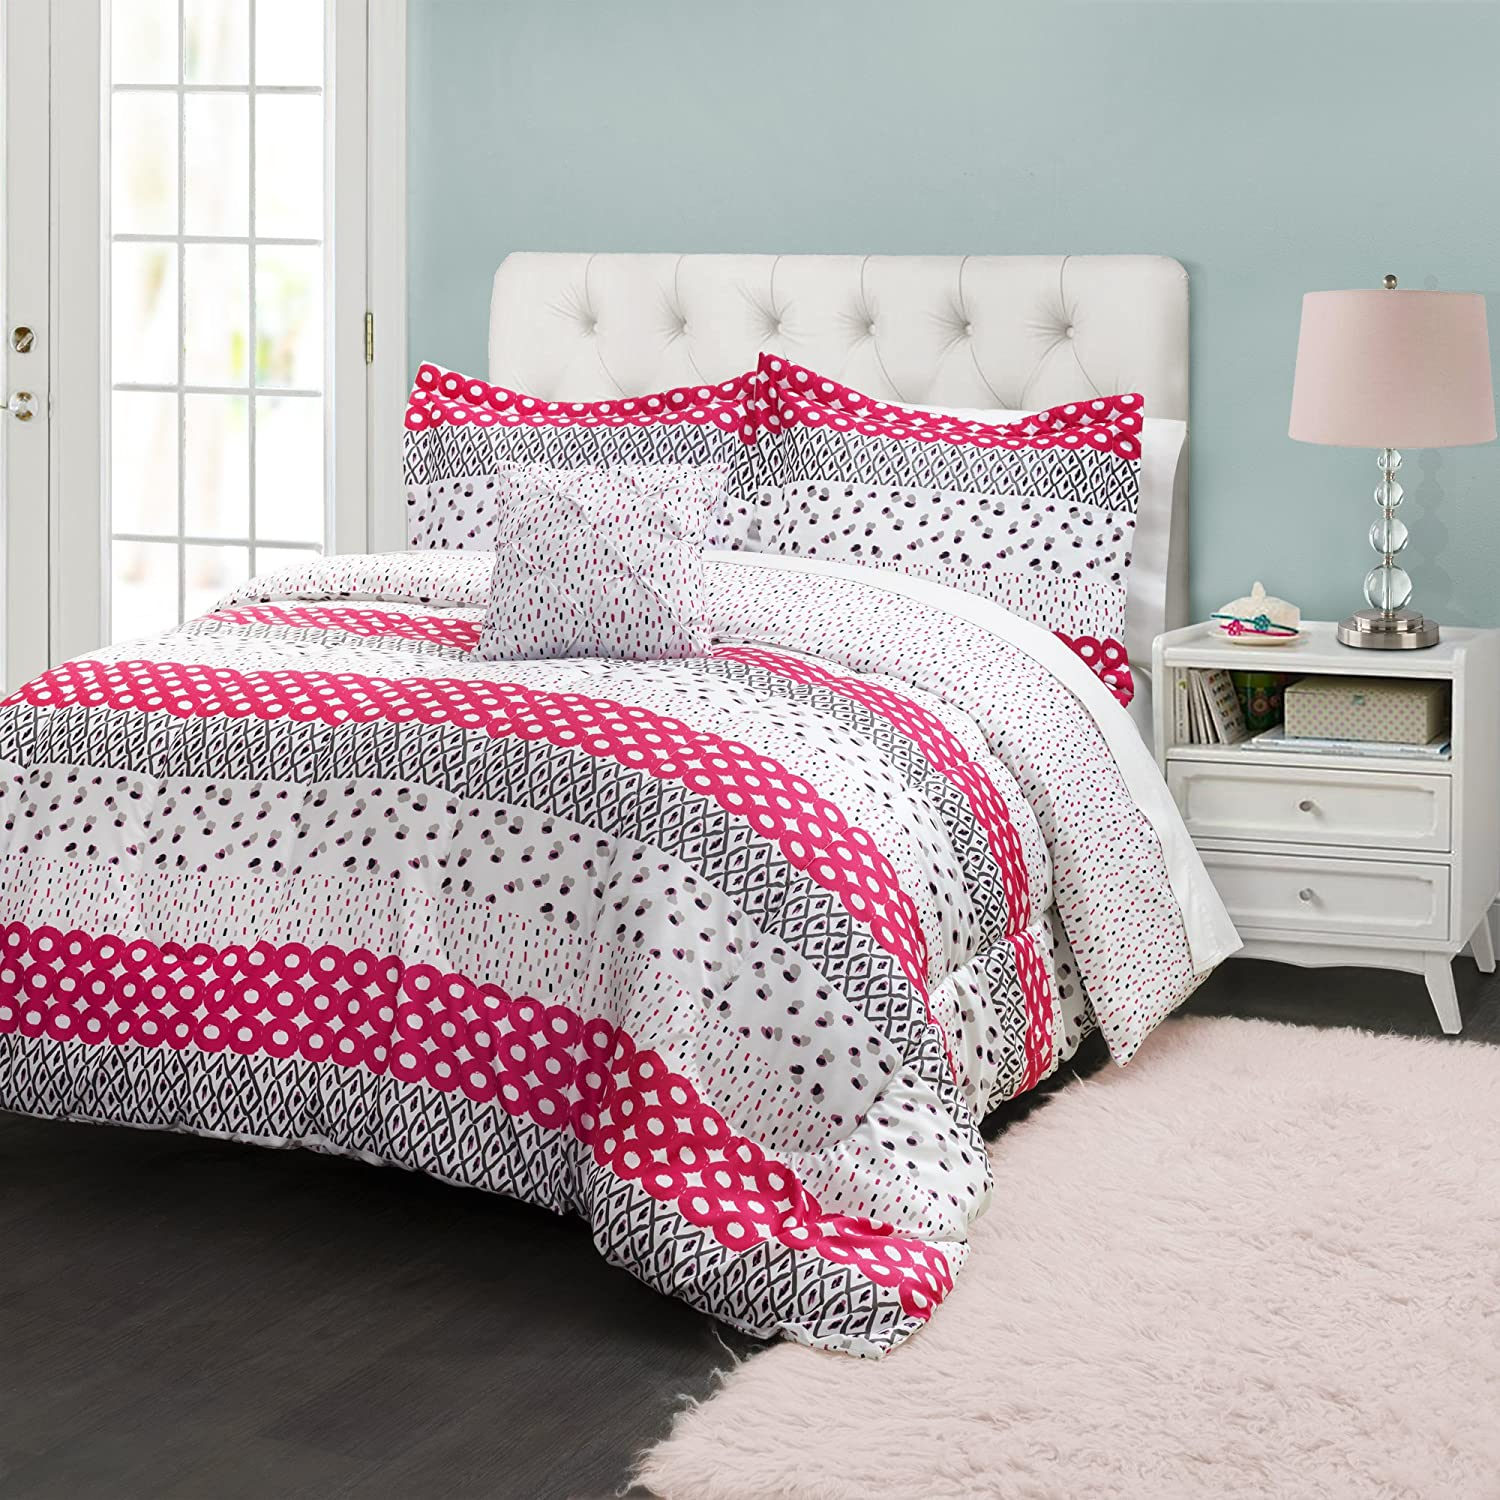 Lush Decor Lush D/écor Franny Comforter 3 Piece Set Pink Triangle Home Fashions 16T000092 Twin